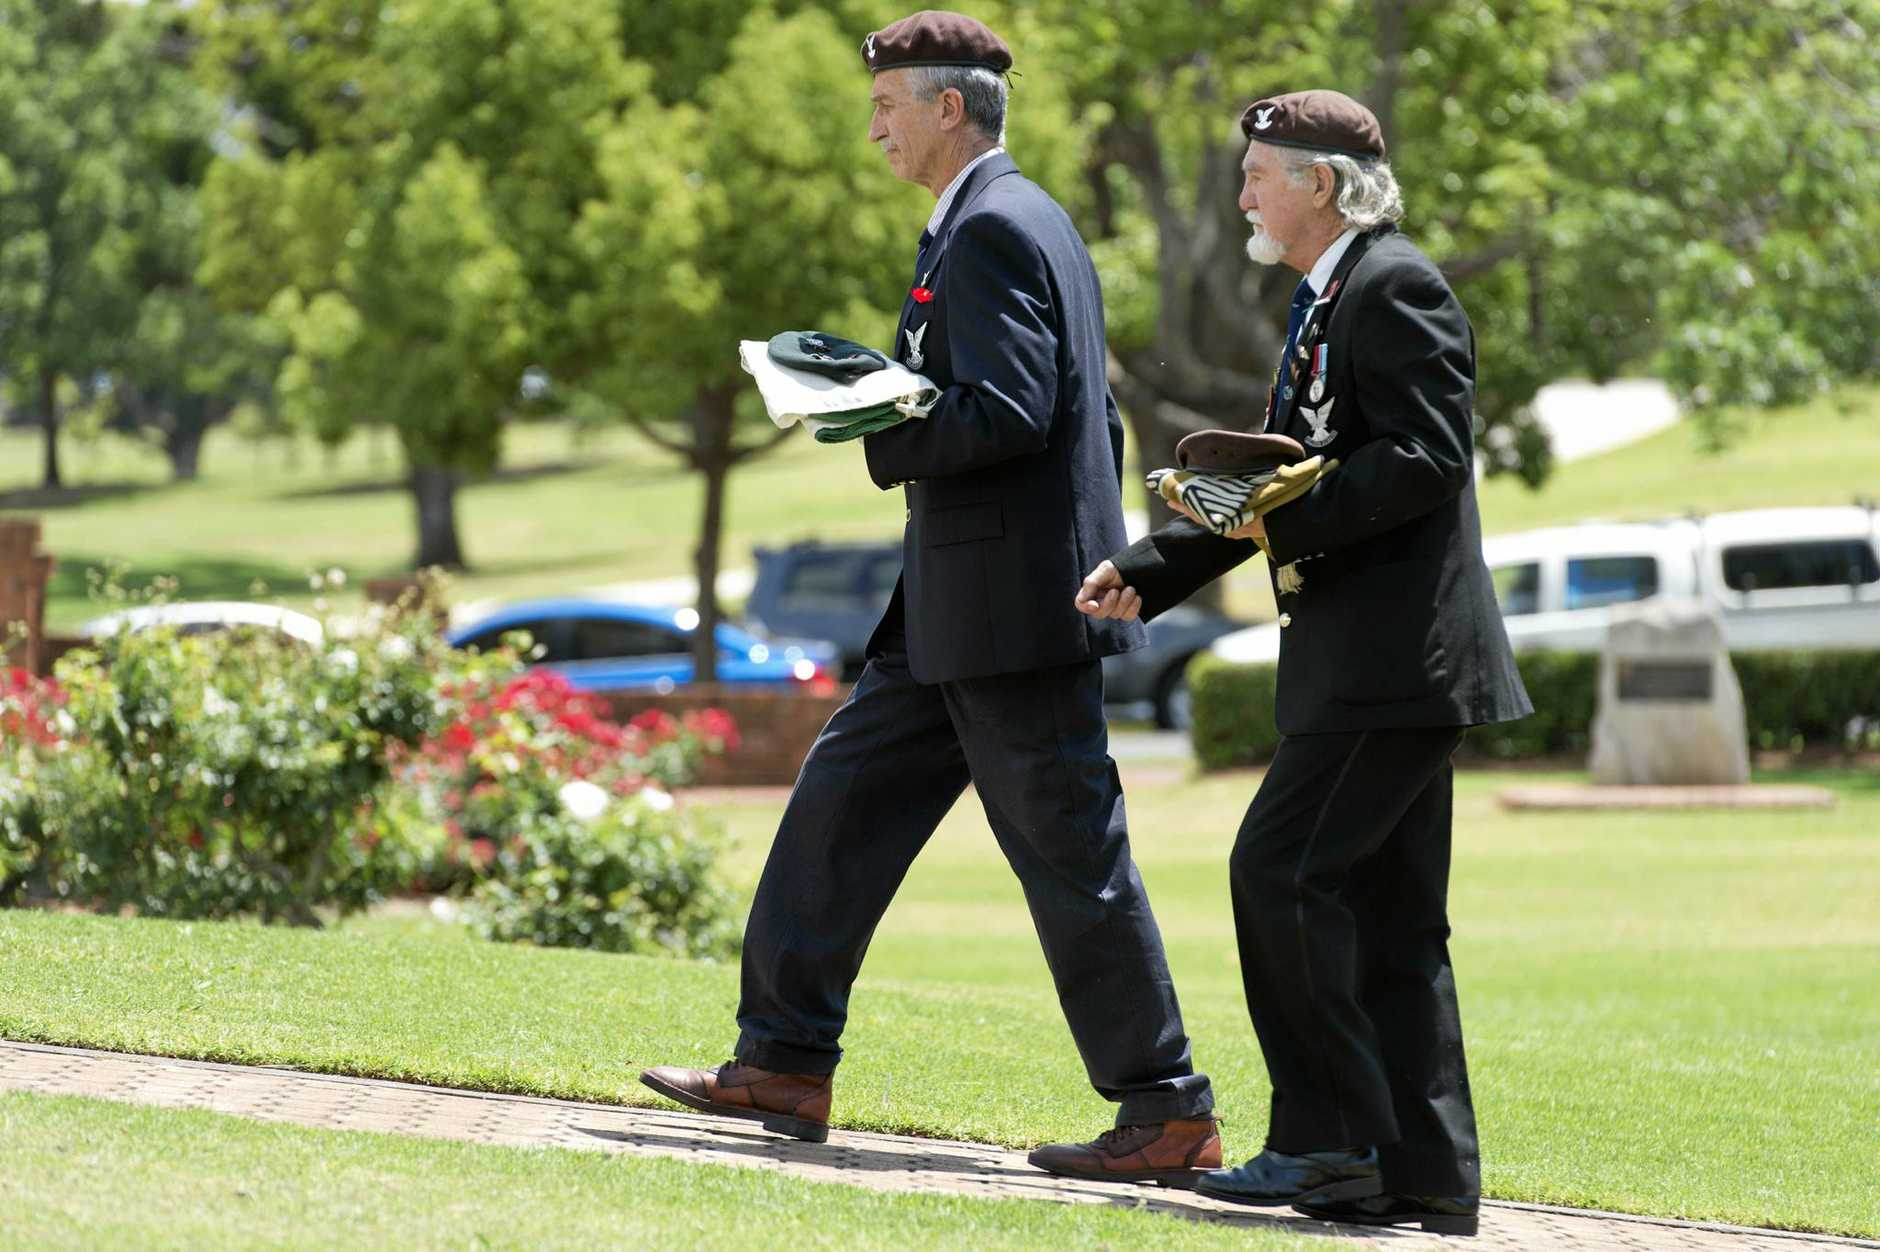 Representing Rhodesia's Selous Scouts Sgt Pete Shore (front) and Sgt Wally Insch at the Toowoomba Remembrance Day service at Mothers' Memorial.